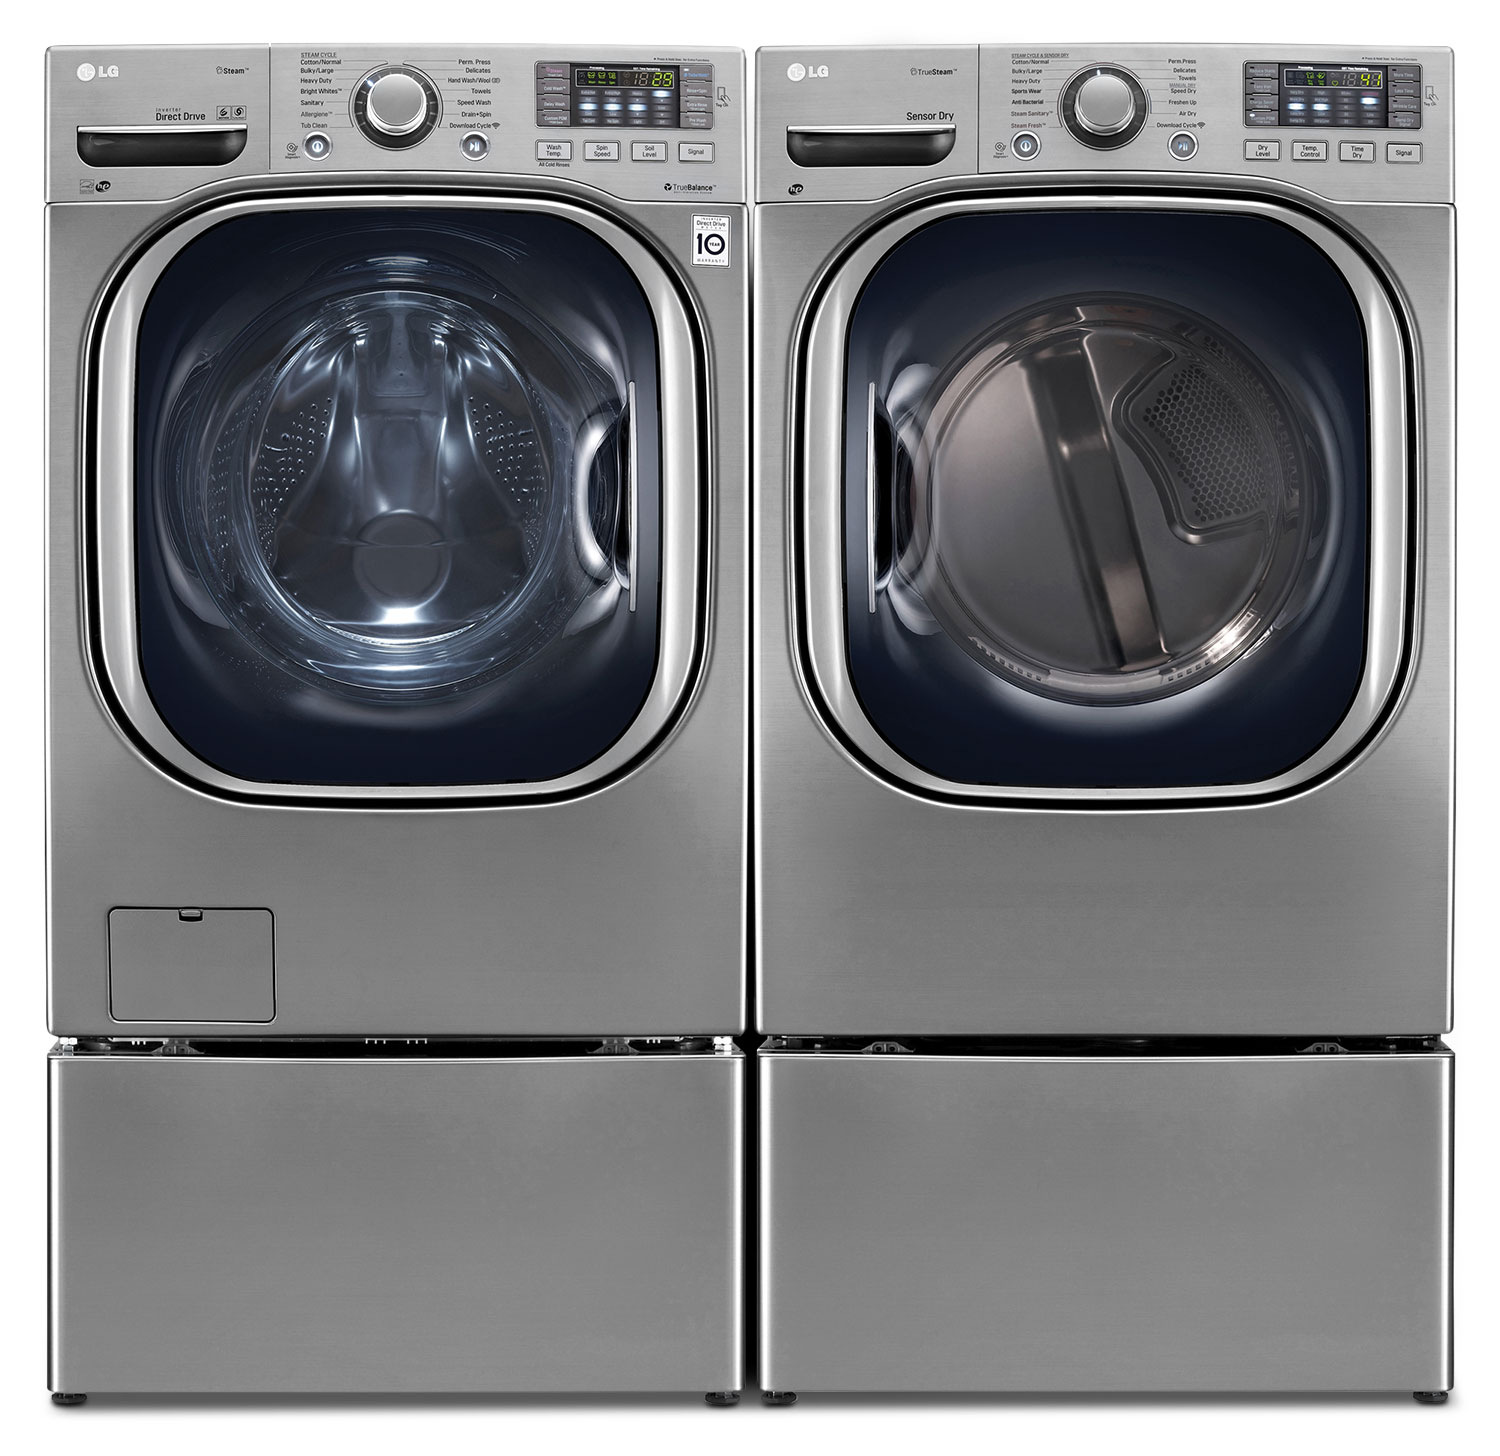 LG TWIN Wash™ 5.2 Cu. Ft. Washer, SideKick™ Pedestal Washer, 7.4 Cu. Ft. Dryer and Storage Pedestal